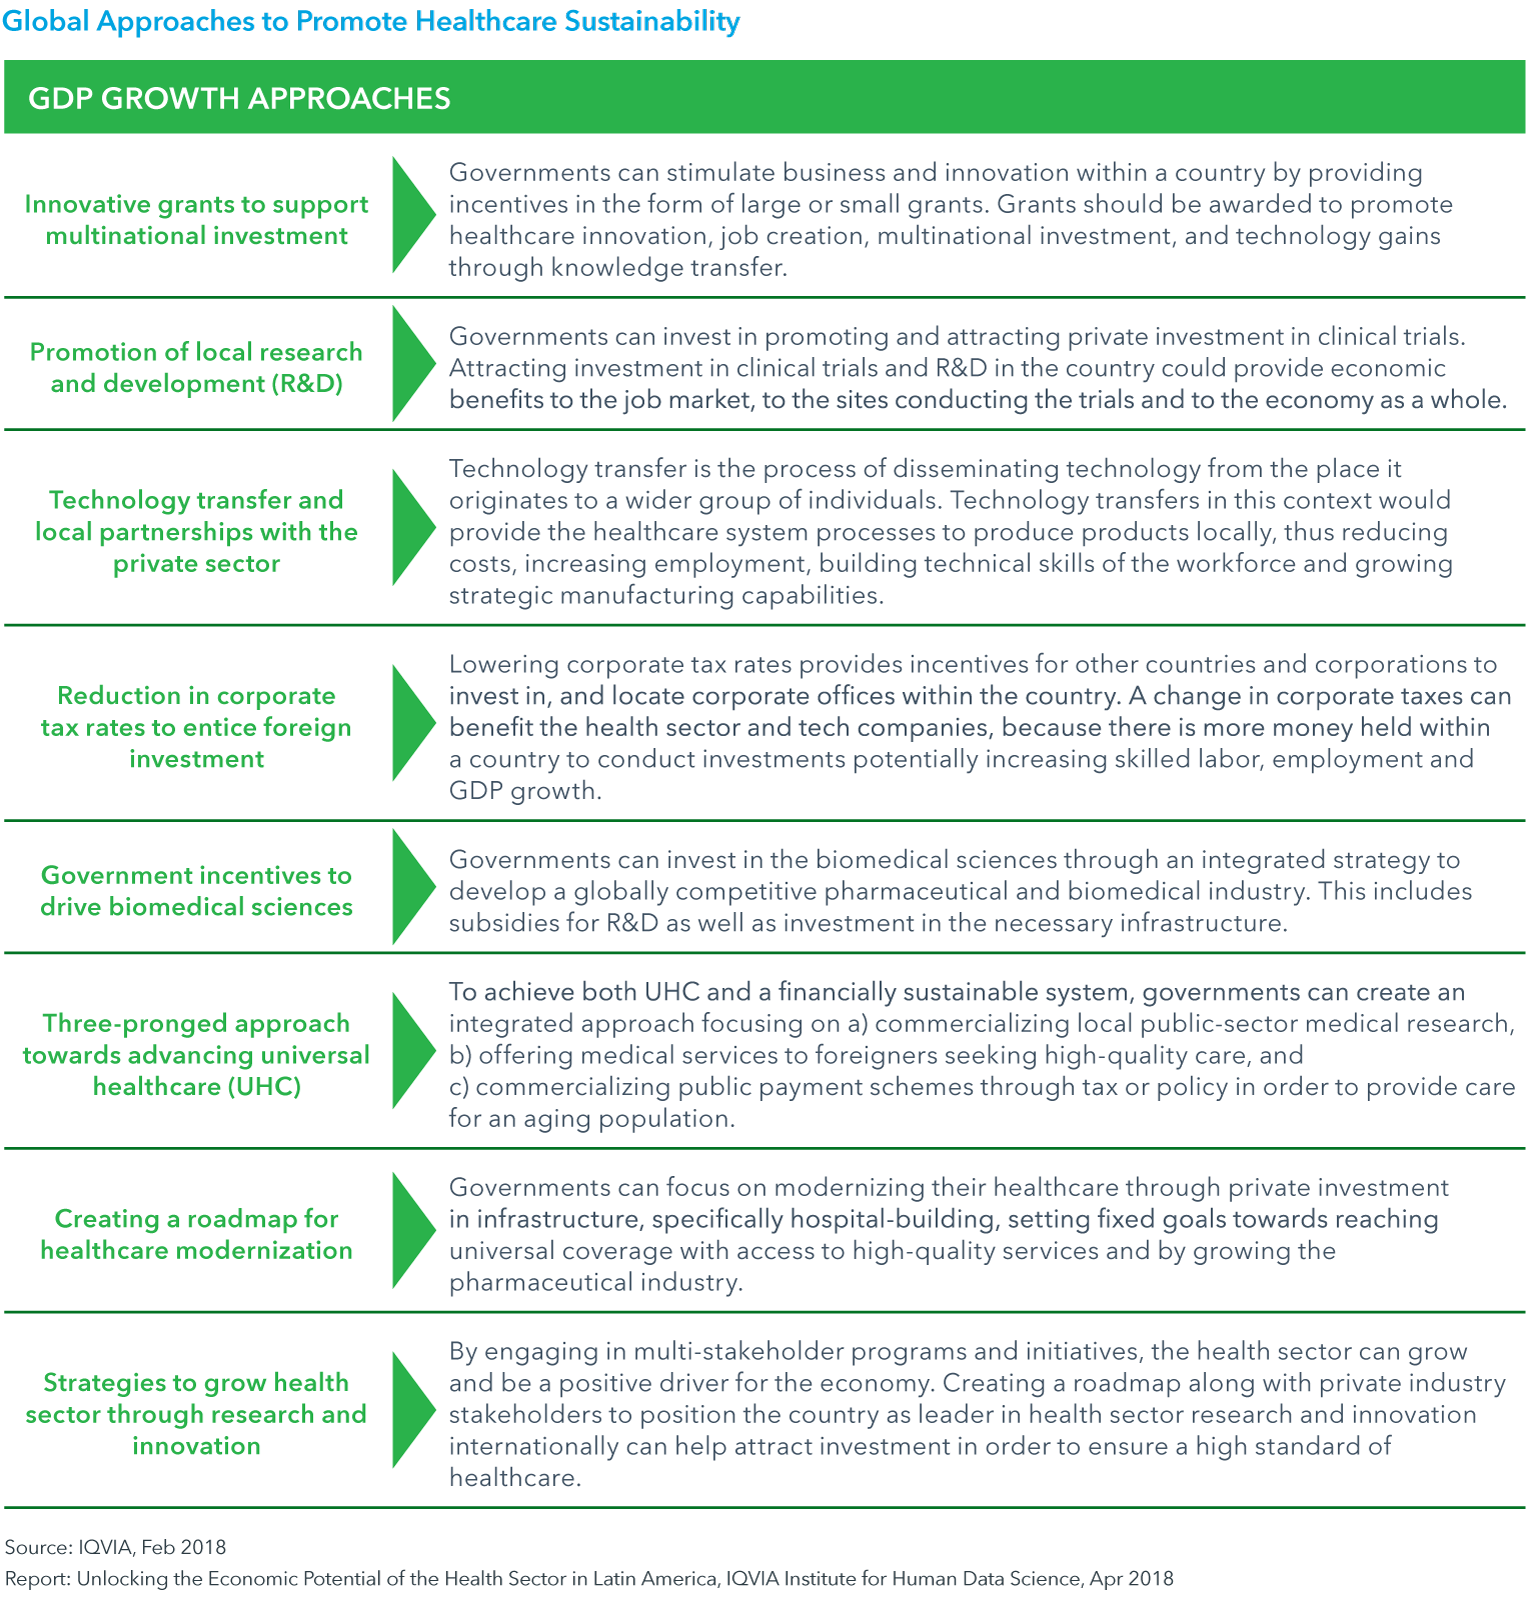 Chart 5b: Global Approaches to Promote Healthcare Sustainability continued